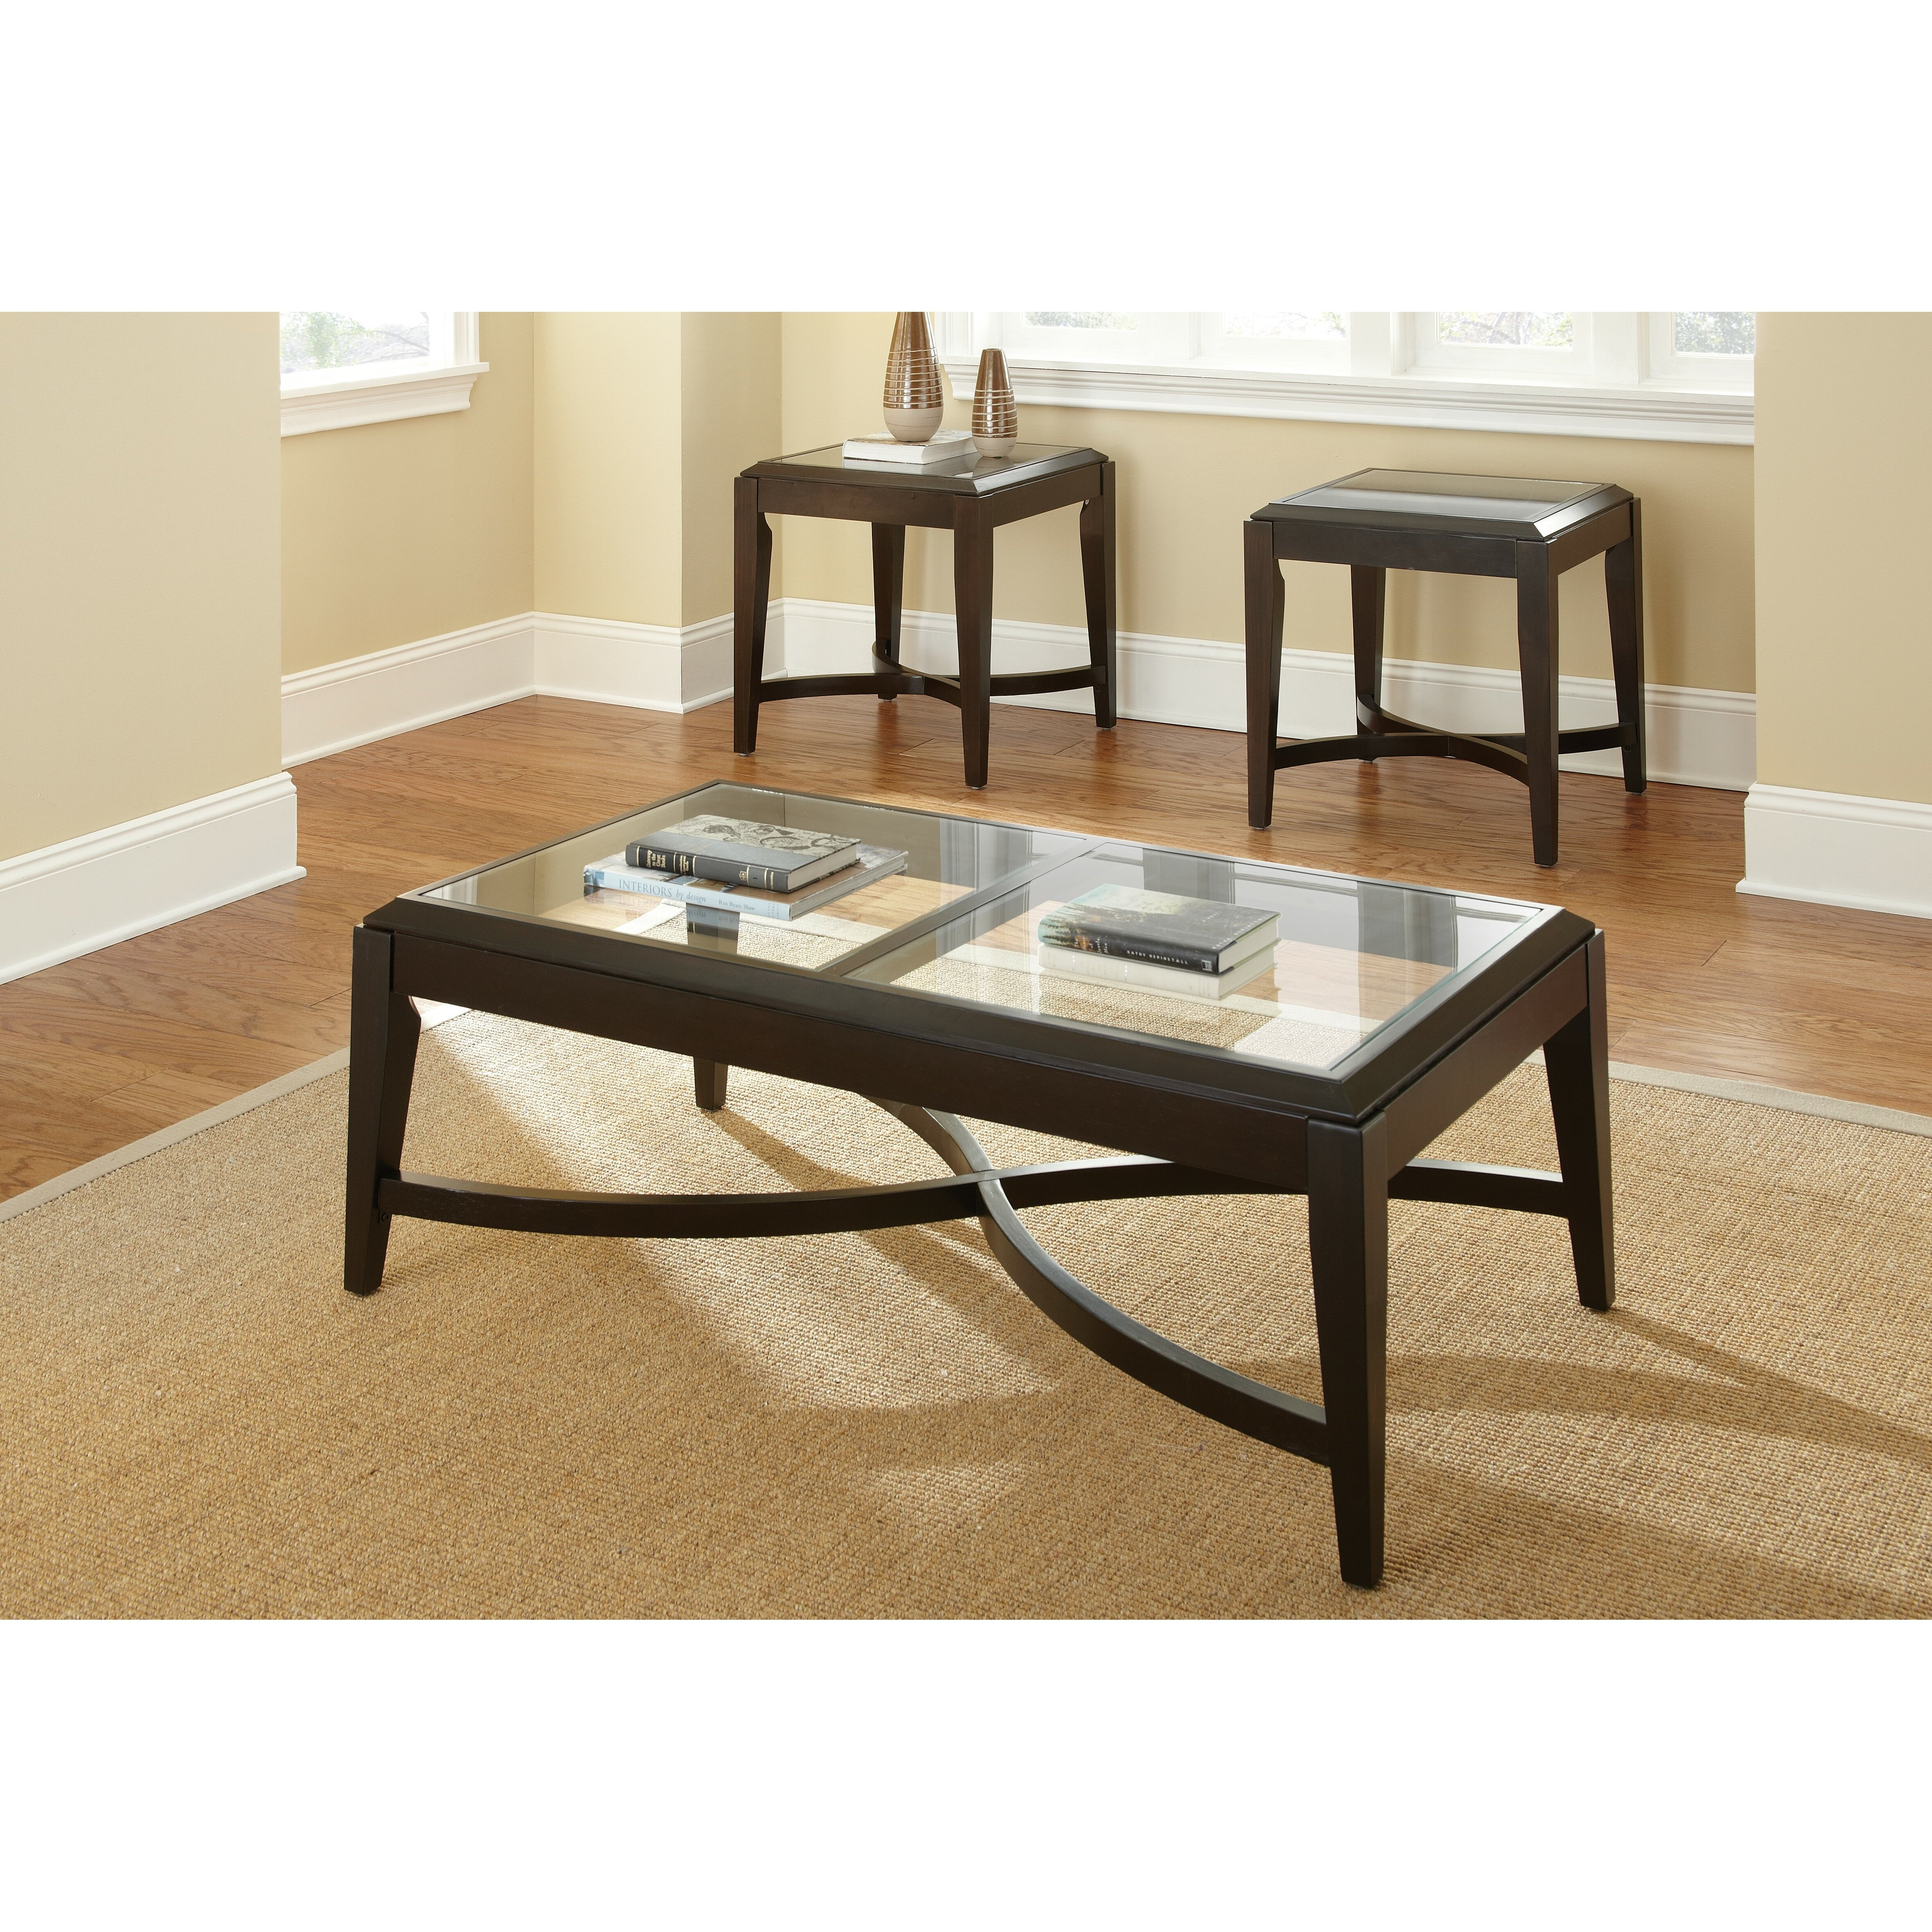 Coffee Table Set Of 3 Steve Silver Furniture Mayfield 3 Piece Coffee Table Set Reviews